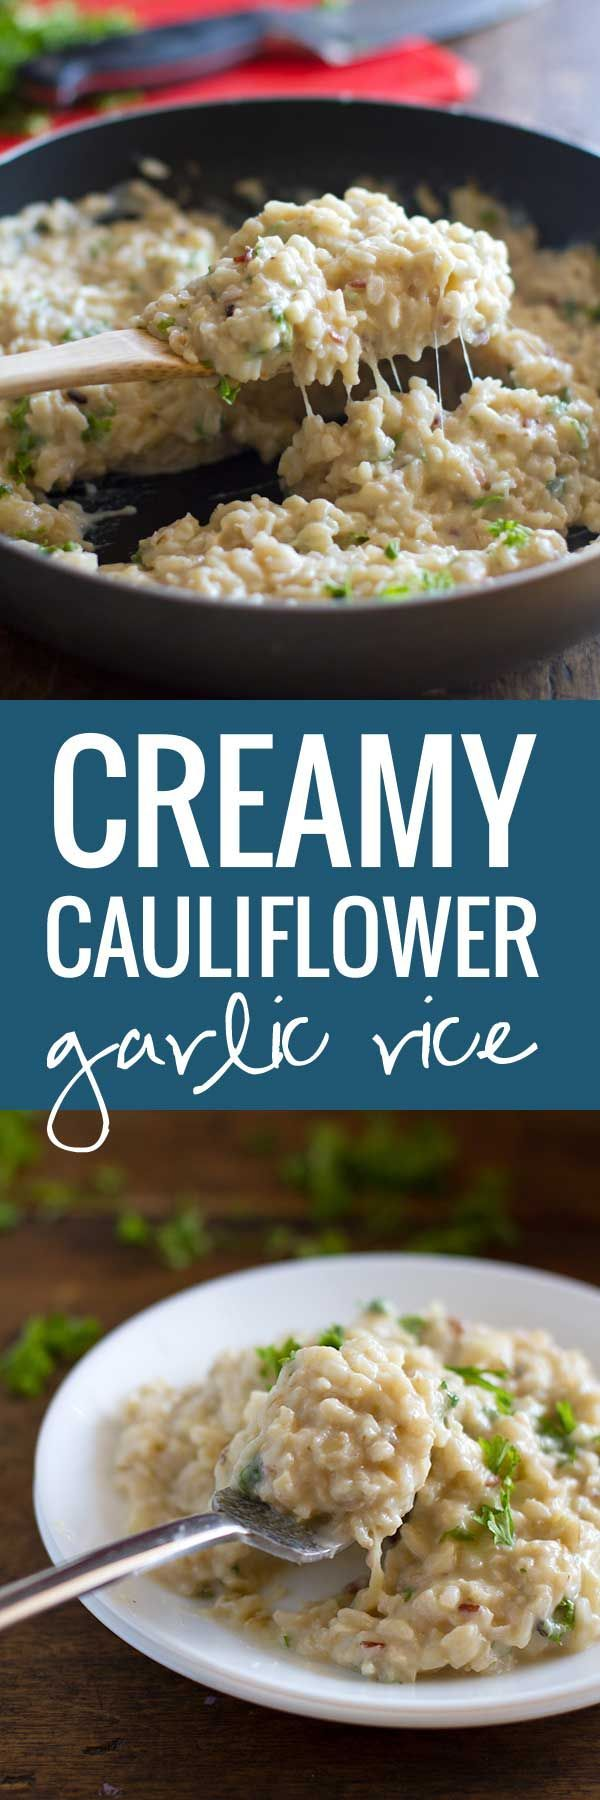 Creamy Cauliflower Garlic Rice - A delicious and healthy combination | http://pinchofyum.com